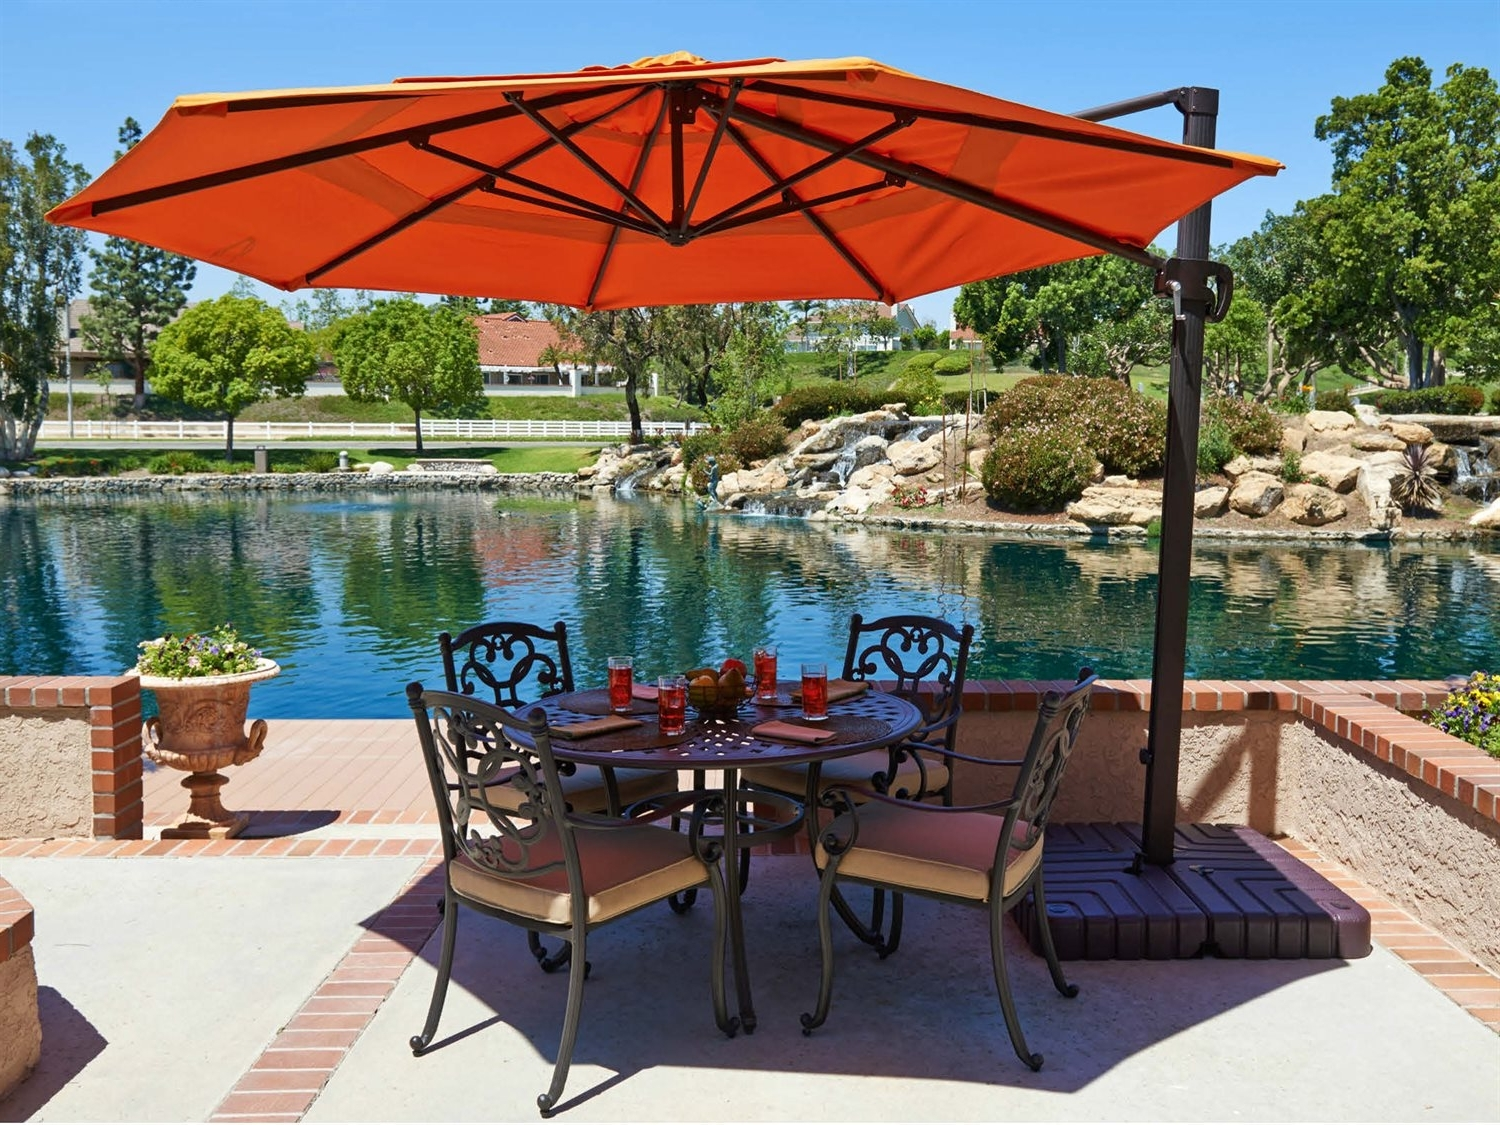 Most Popular The 5 Best Patio Umbrellas 2018 – Any Online Games Inside Patio Umbrellas For High Wind Areas (View 3 of 20)